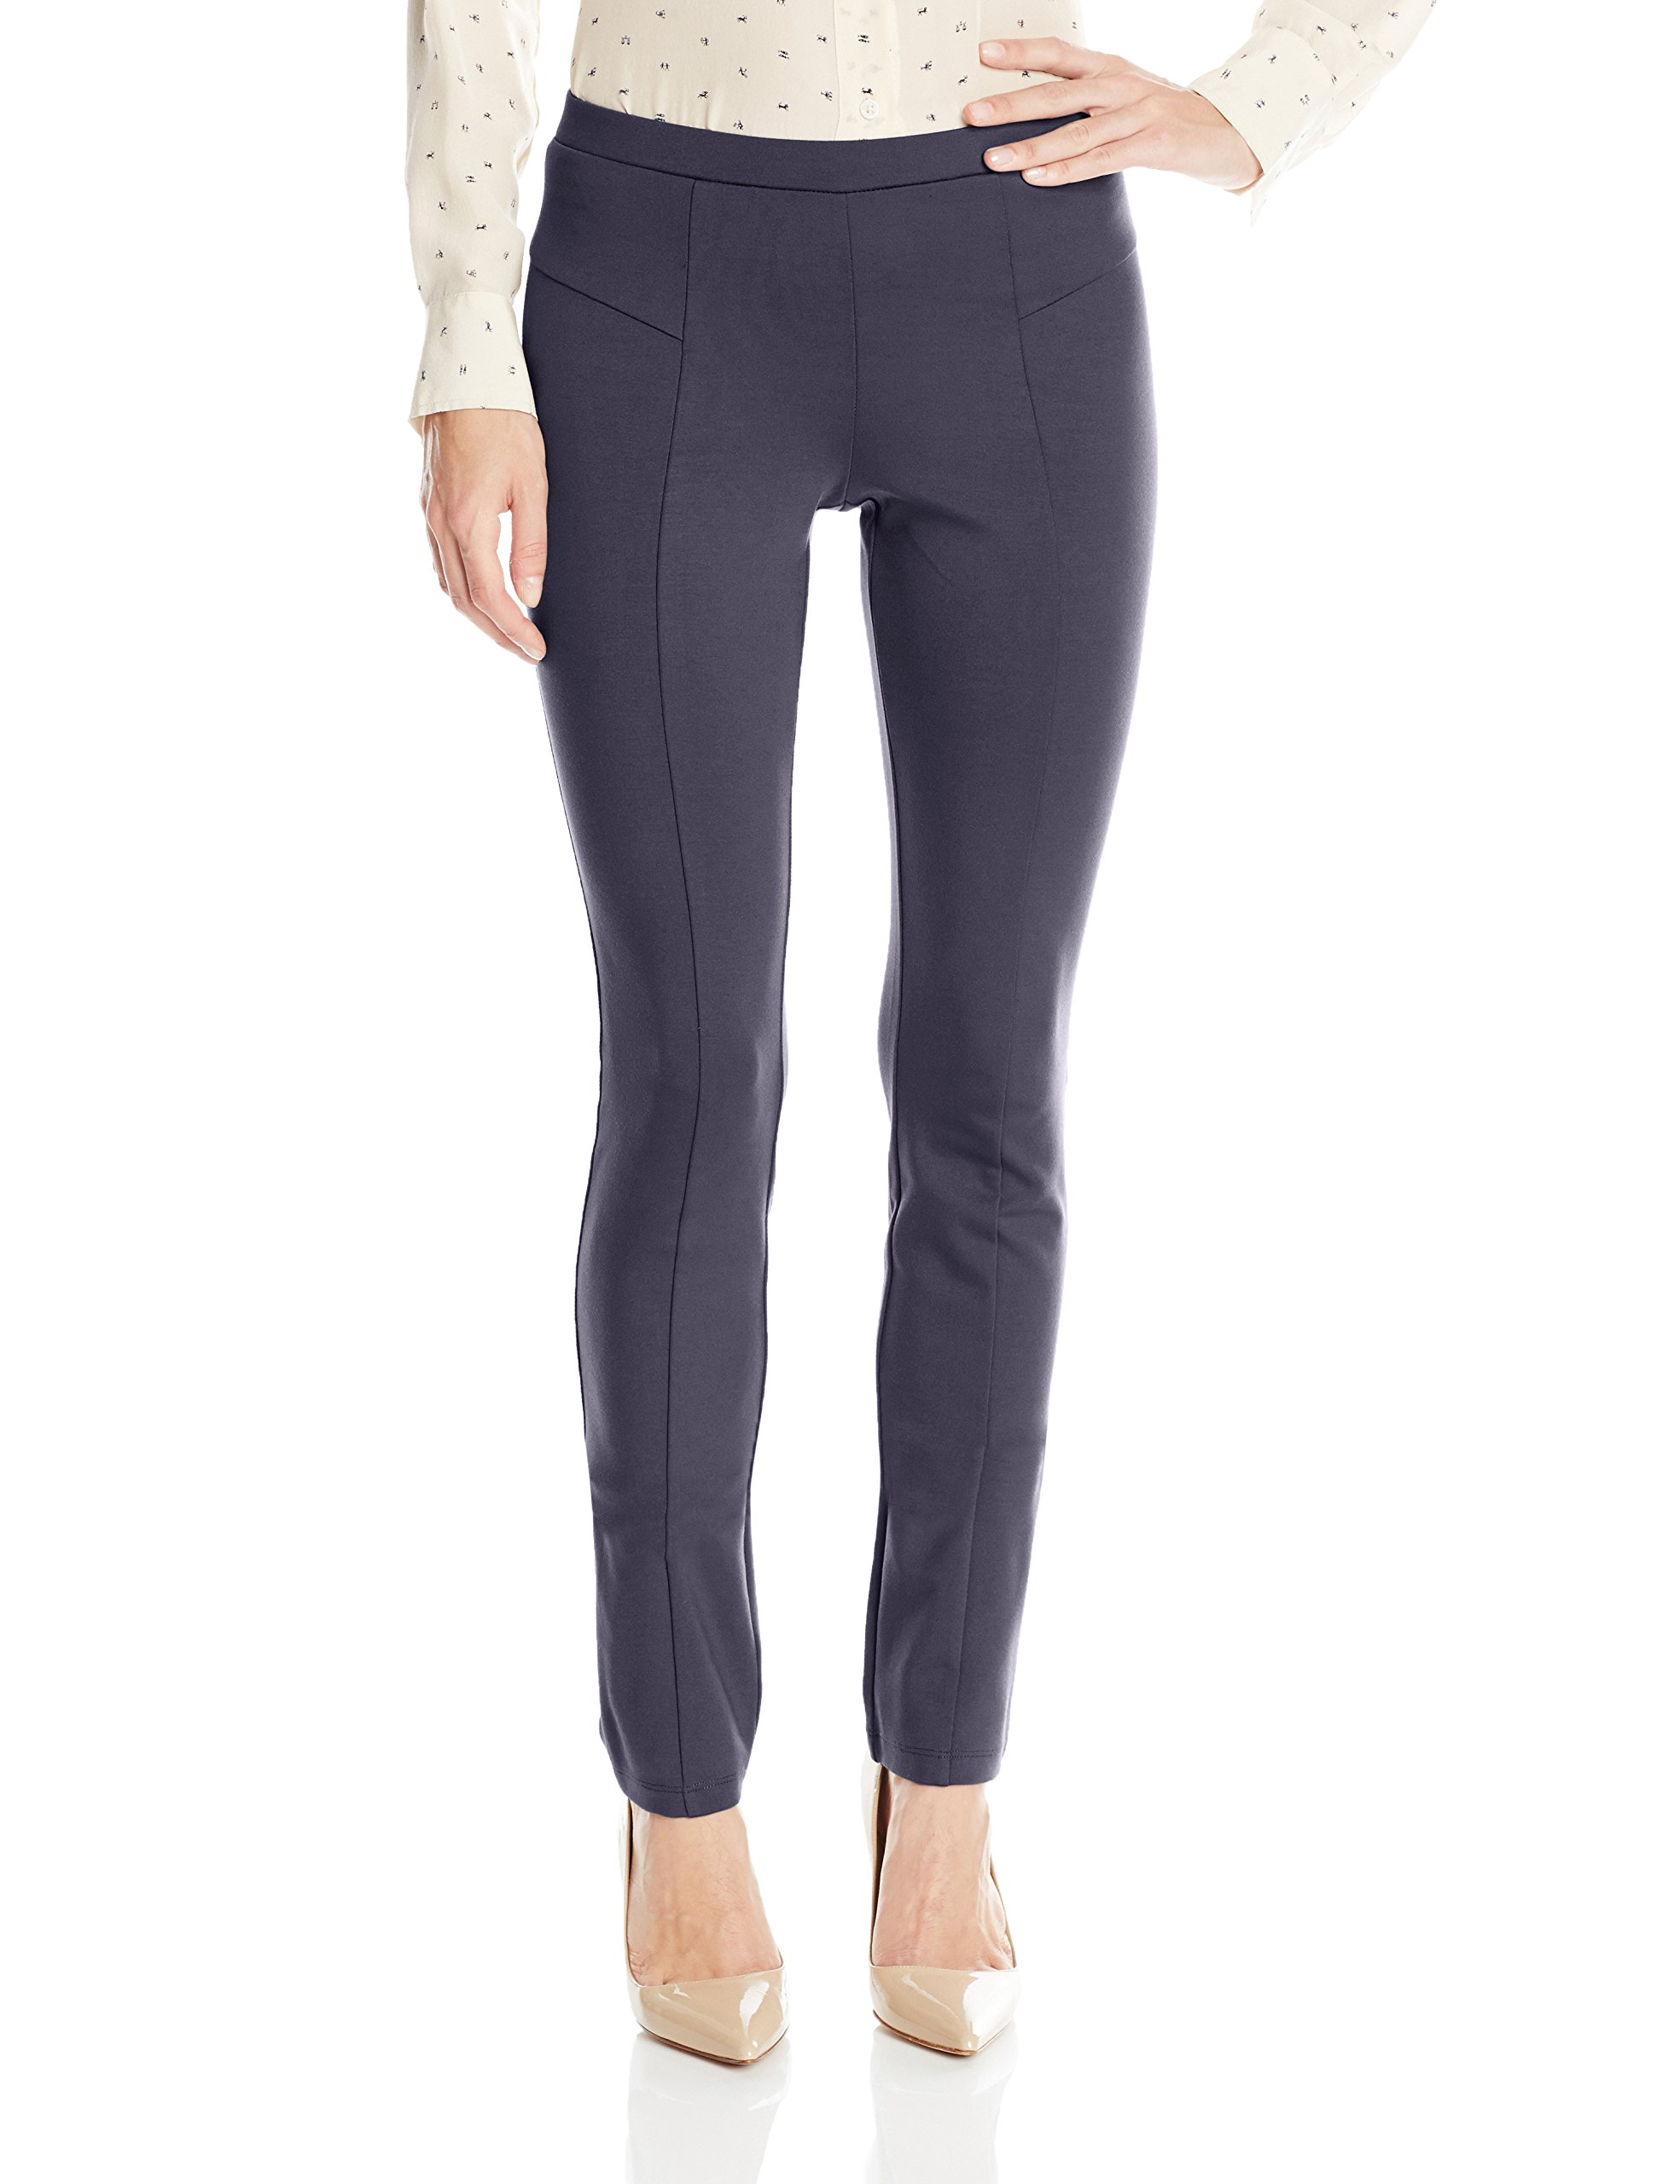 NIC+ZOE Women's Perfect Ponte Pant, Midnight, M